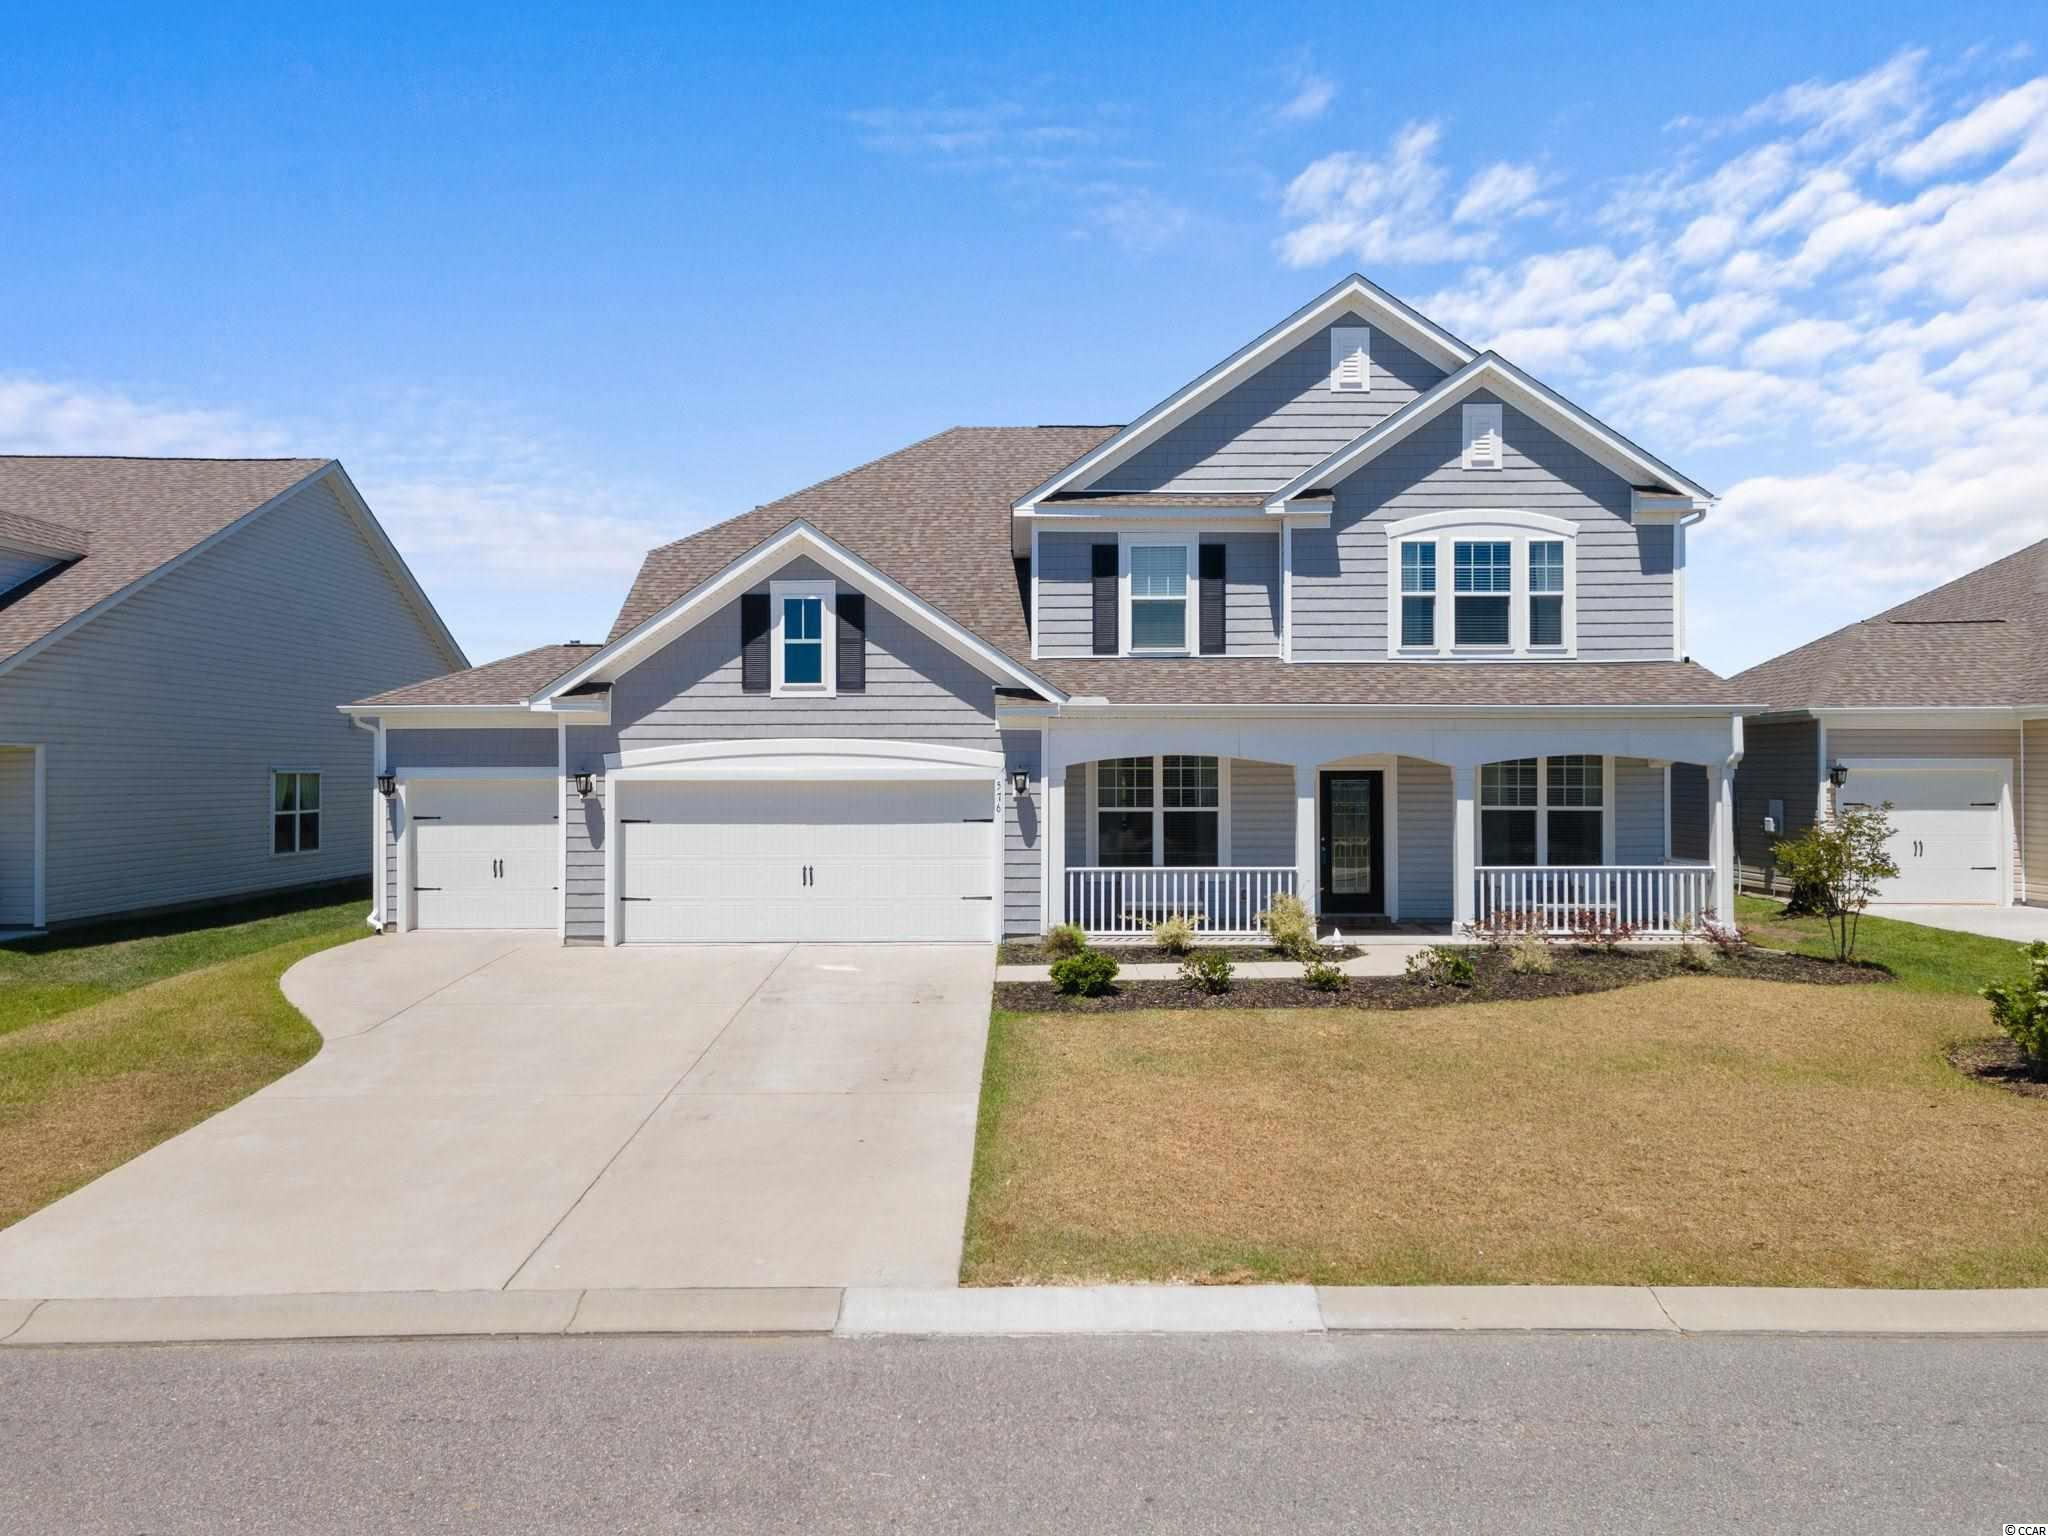 """Upgrades galore including Newly installed Solar Panels! This gorgeous """"Ivey"""" boasts an open concept design, 1st Floor master suite, screened porch, fireplace, 3-car garage and more. The Dining room features a coffered ceiling and gorgeous decorative trim. A study, powder room, large laundry room, valet area with boot box, and a Great room open to the kitchen and breakfast area, and a Butler's pantry. The 2nd level provides a loft, 3 bedrooms, large bath, and a storage room. Newly installed solar panels on the exterior. Belle Mer's amenities include a clubhouse, pool, exercise room , weekly trash collection, and sidewalks. Conveniently located between Myrtle Beach-Murrells Inlet; minutes to the Myrtle Beach International Airport, Coastal Grand Mall, Market Common, public beach accesses in Myrtle Beach/Surfside Beach, the Marsh Walk, South Strand and Sayebrook Town Center shopping and dining venues, numerous grocery stores, and several golf courses. 100% Energy Star Certified to ensure lower utility costs and a more comfortable home."""